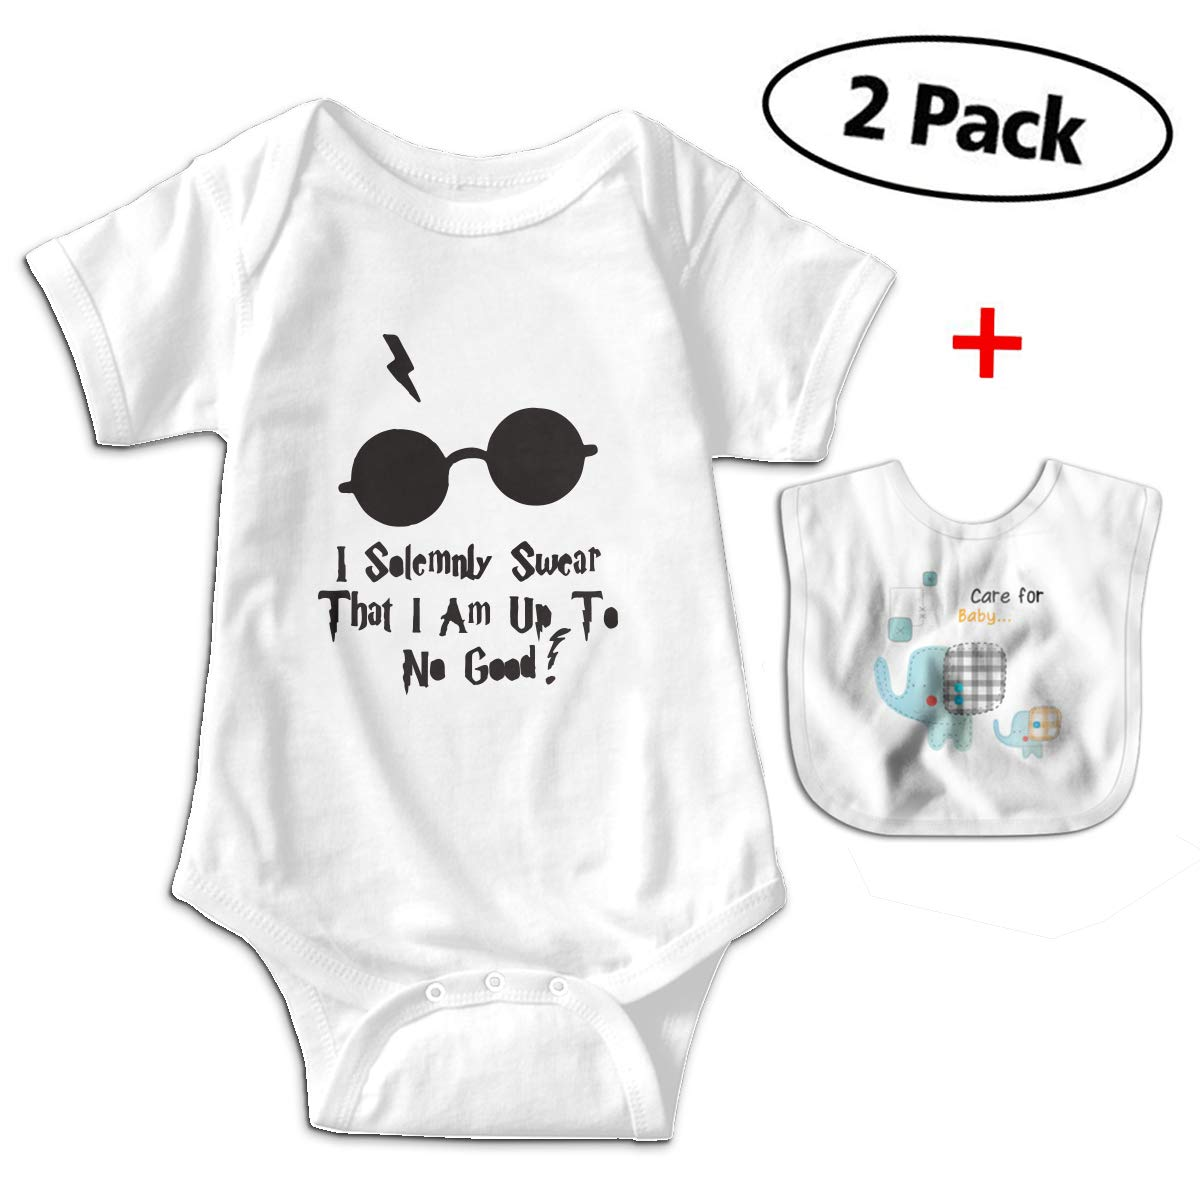 8337cff9d Amazon.com: Benunit I Solemnly Swear That My Aunt Baby Boy Cotton  Short-Sleeve Onesies Shower Gifts One-Piece: Clothing